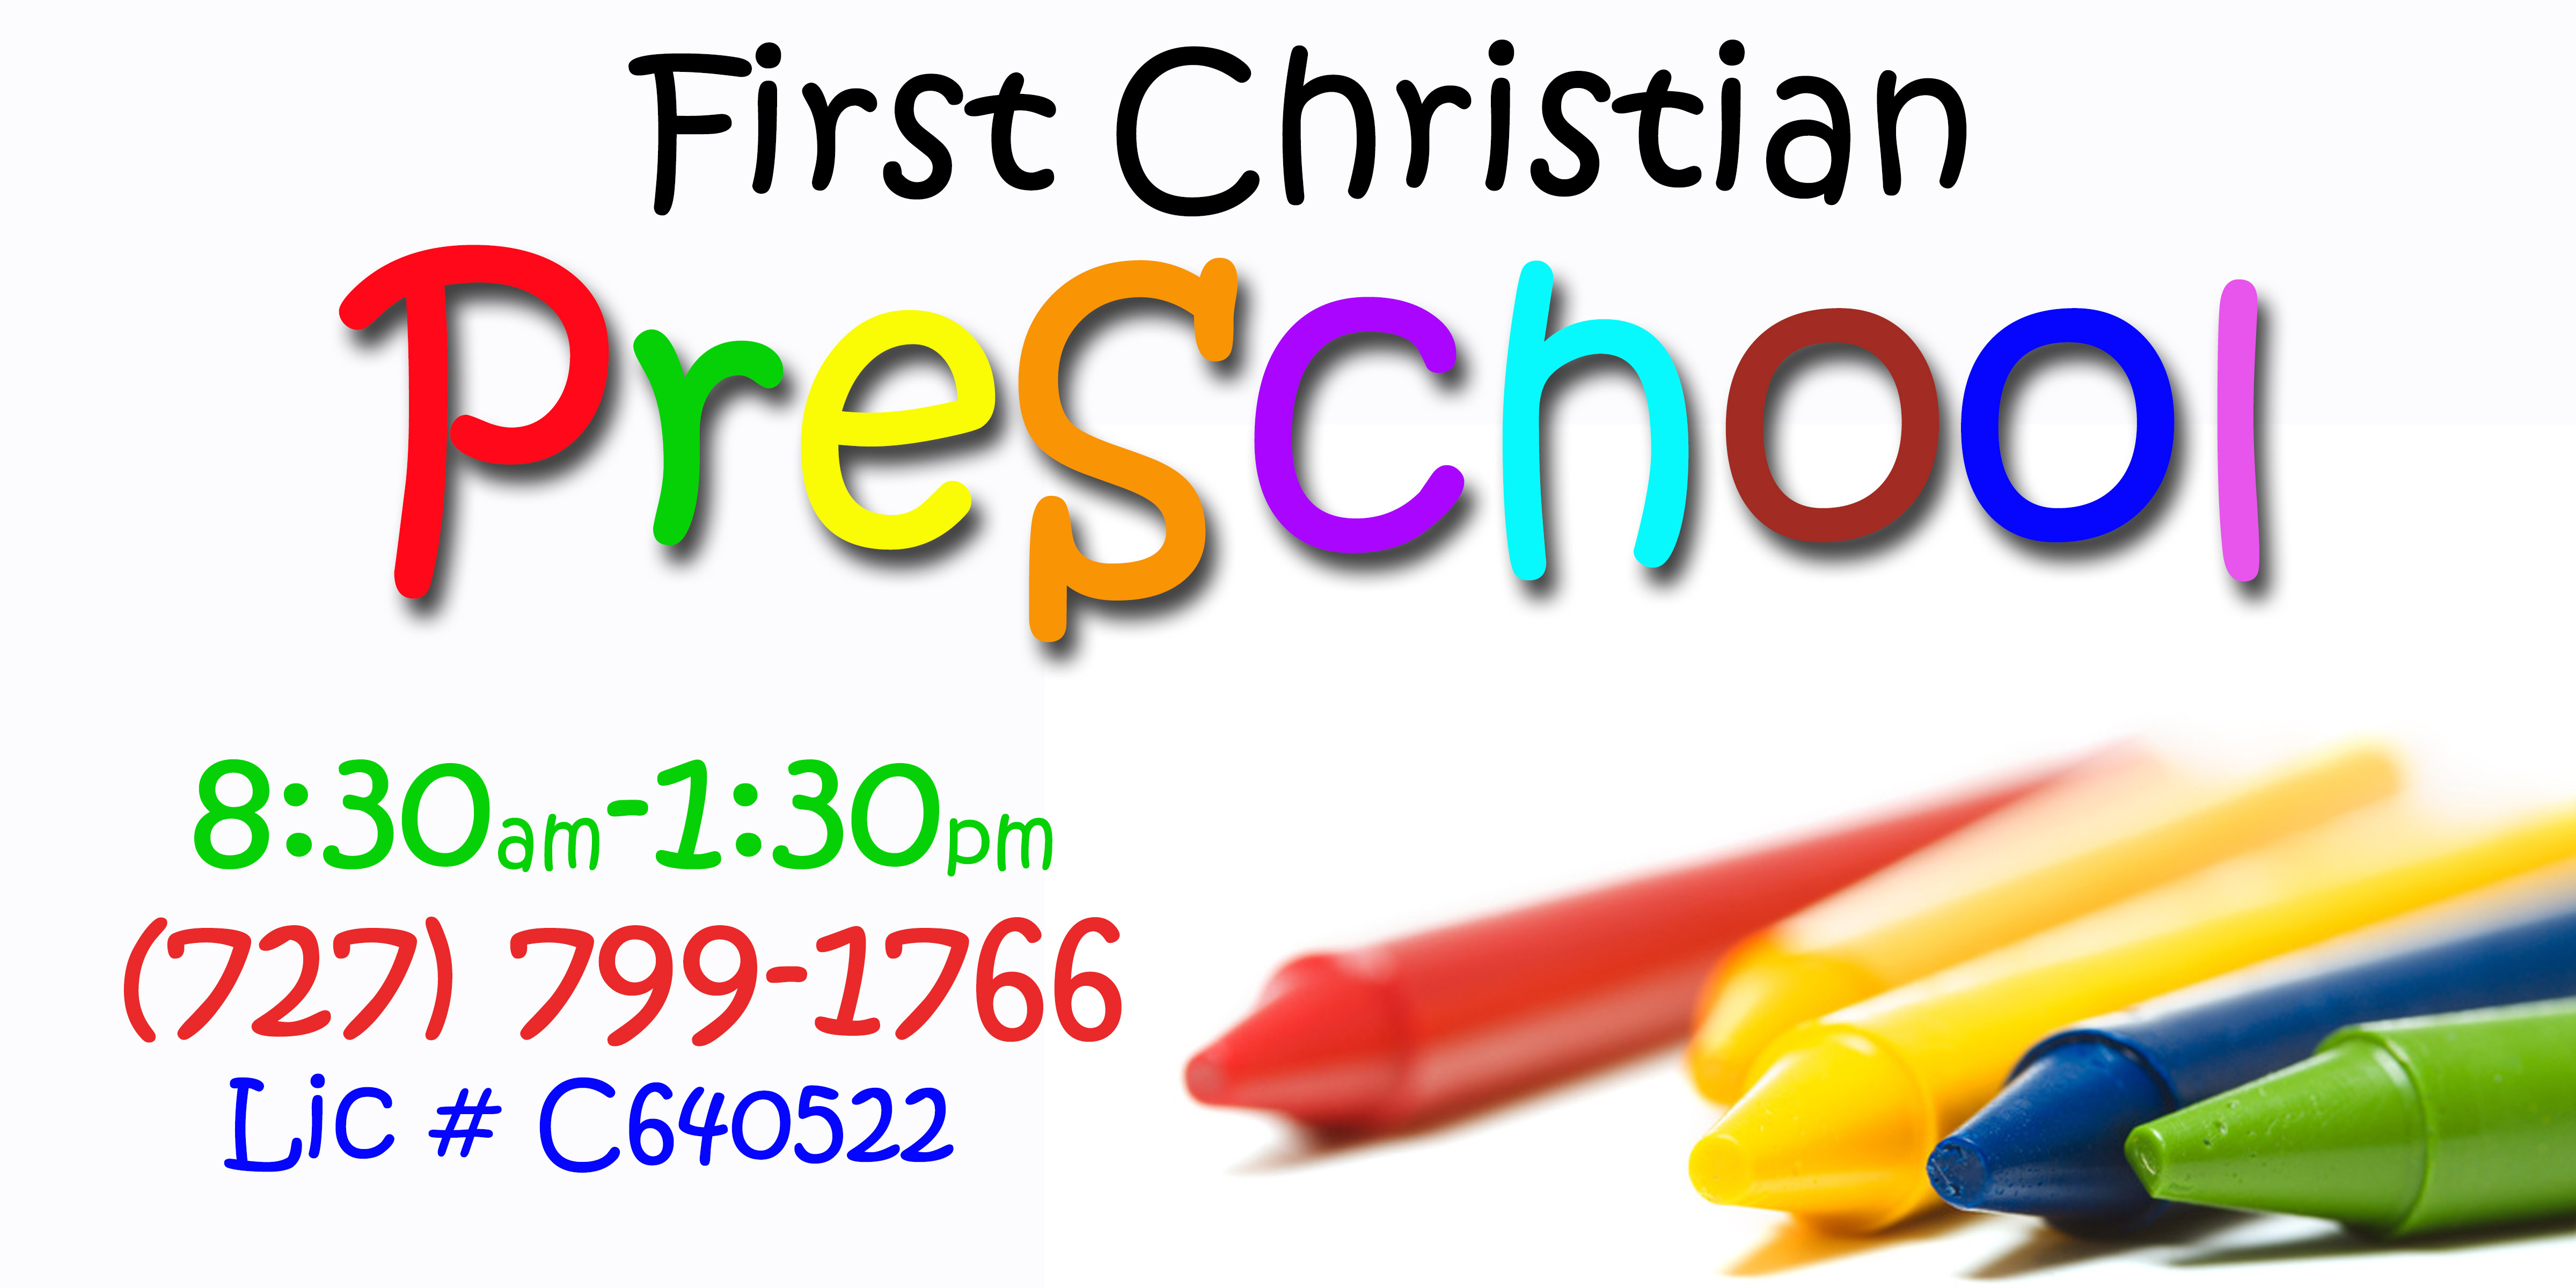 First Christian Preschool